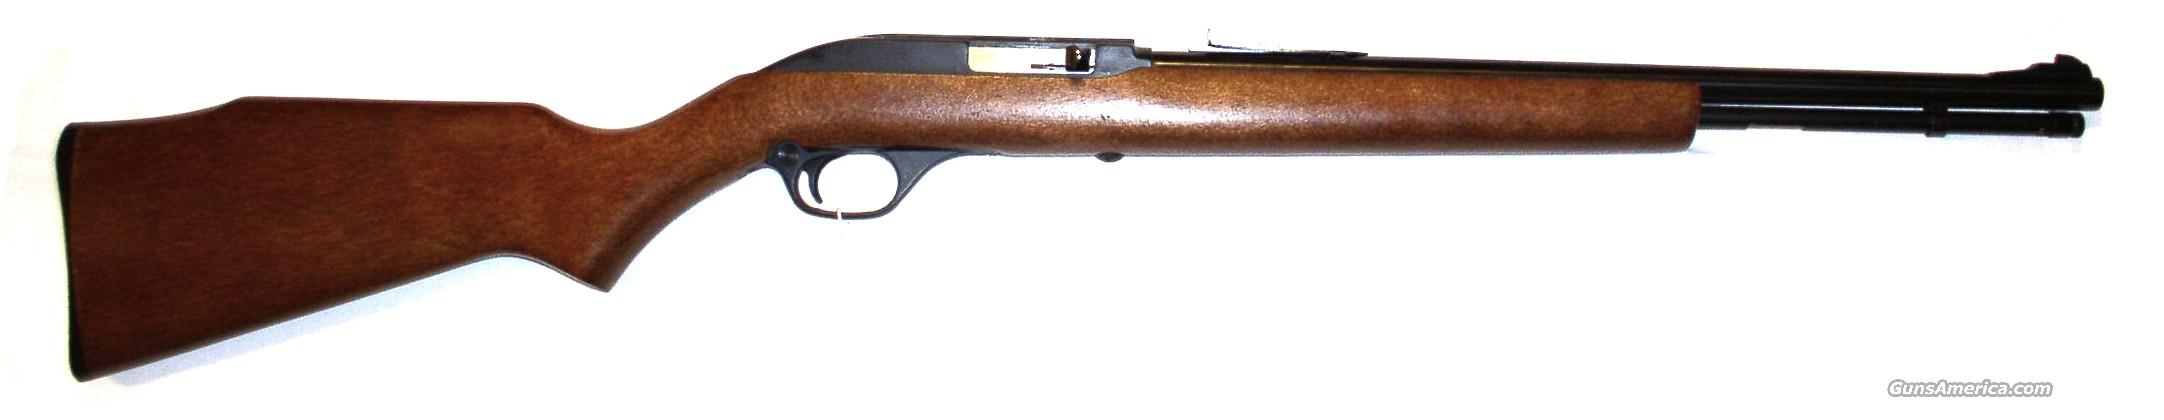 Marlin   Model 75 C  Guns > Rifles > Marlin Rifles > Modern > Semi-auto